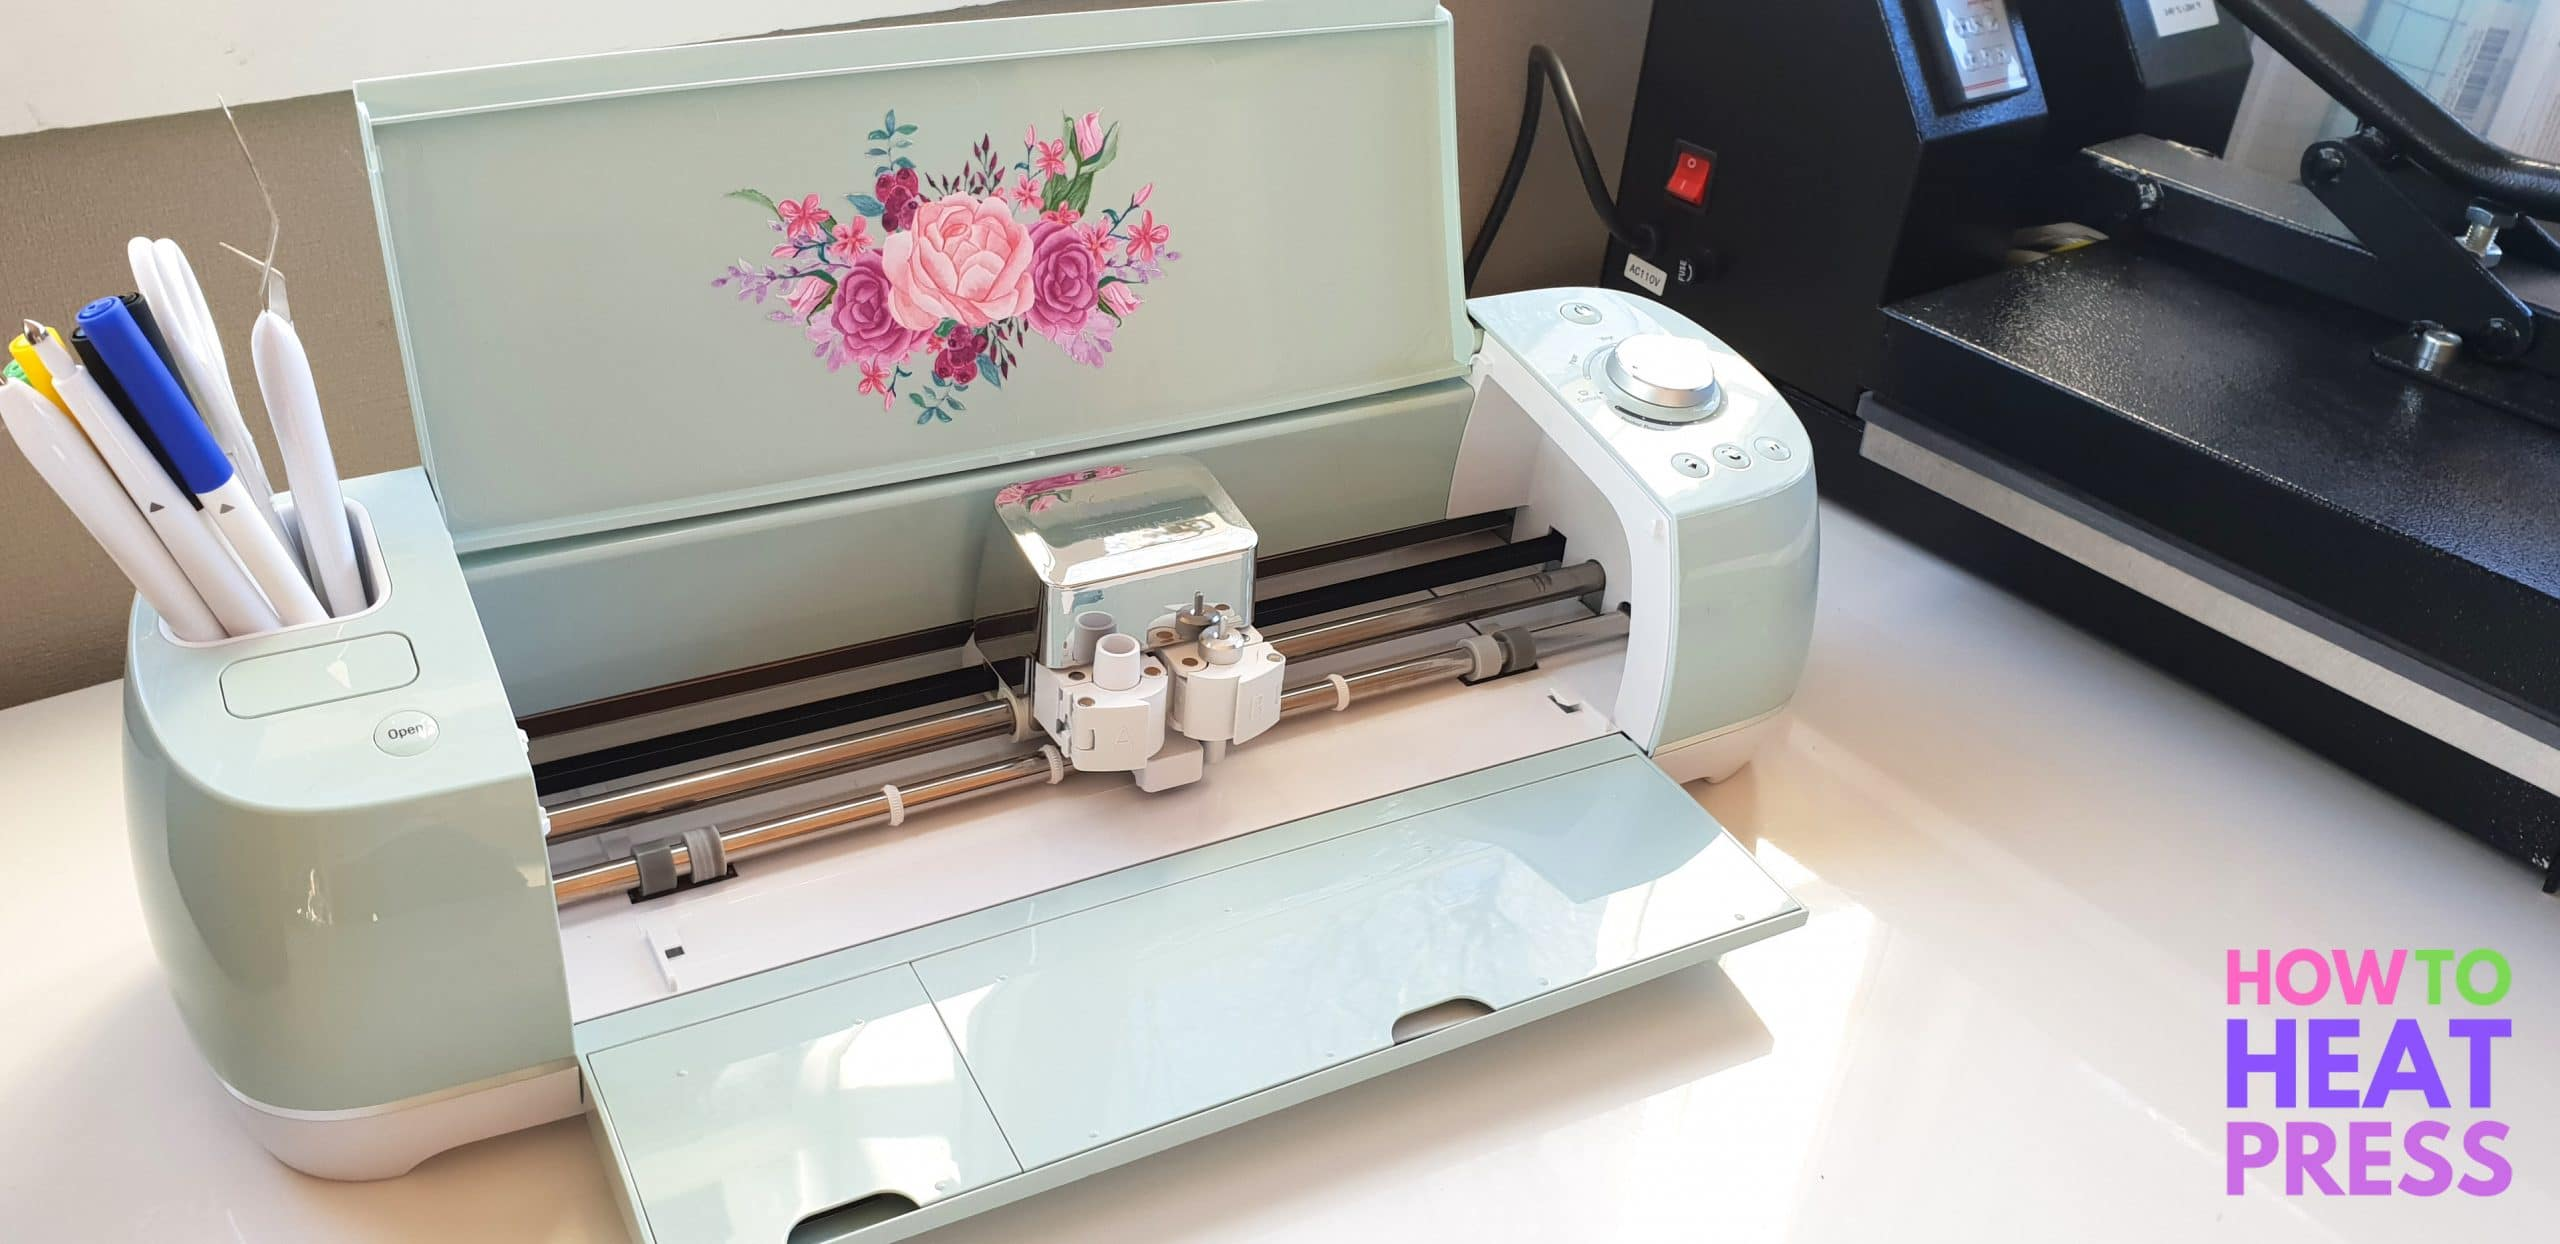 cricut explore air 2 decorated with printable vinyl stickers